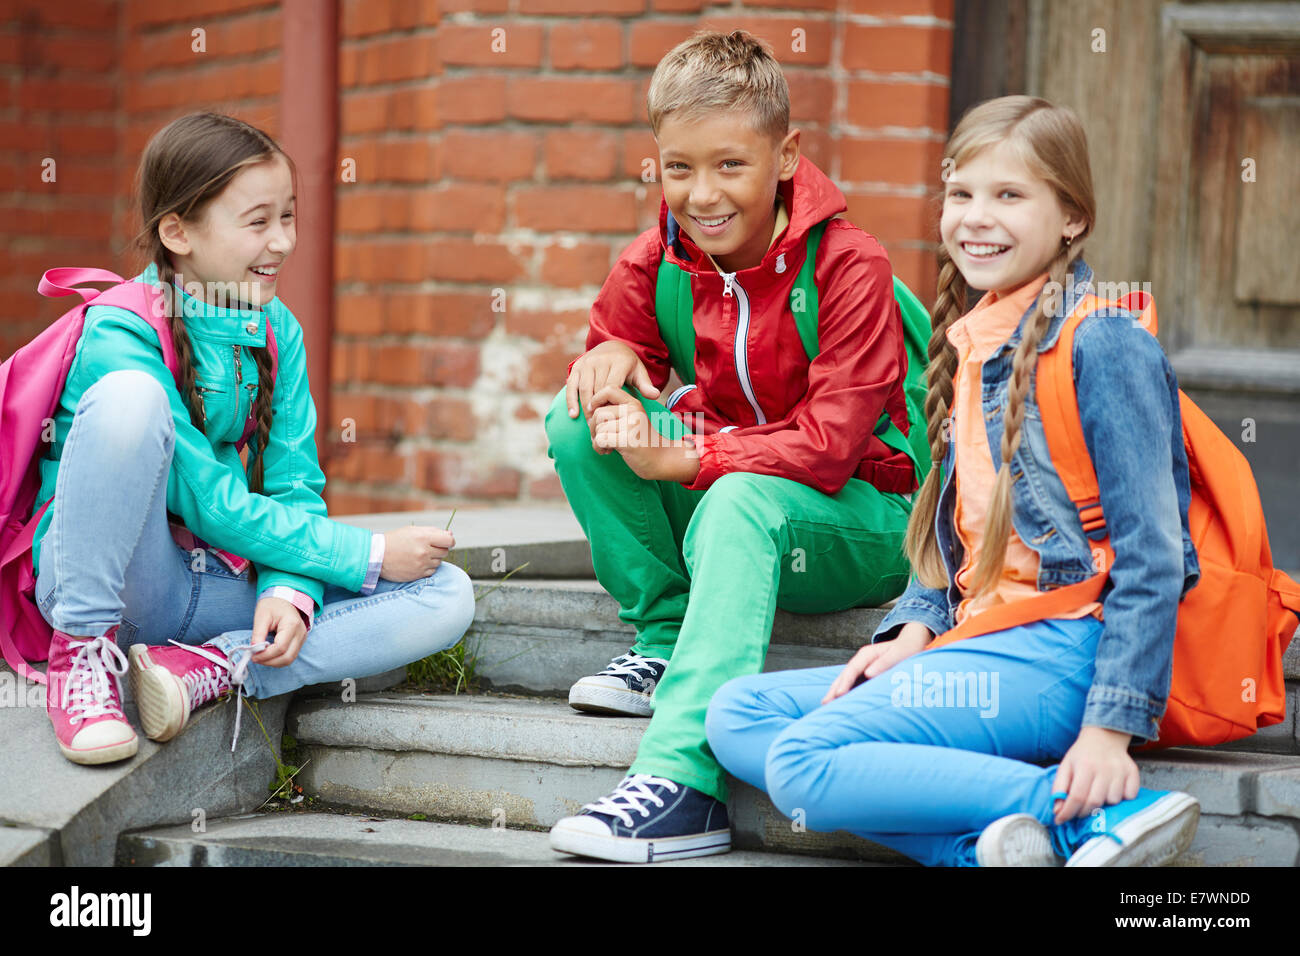 Happy schoolkids in casual enjoying time after school - Stock Image